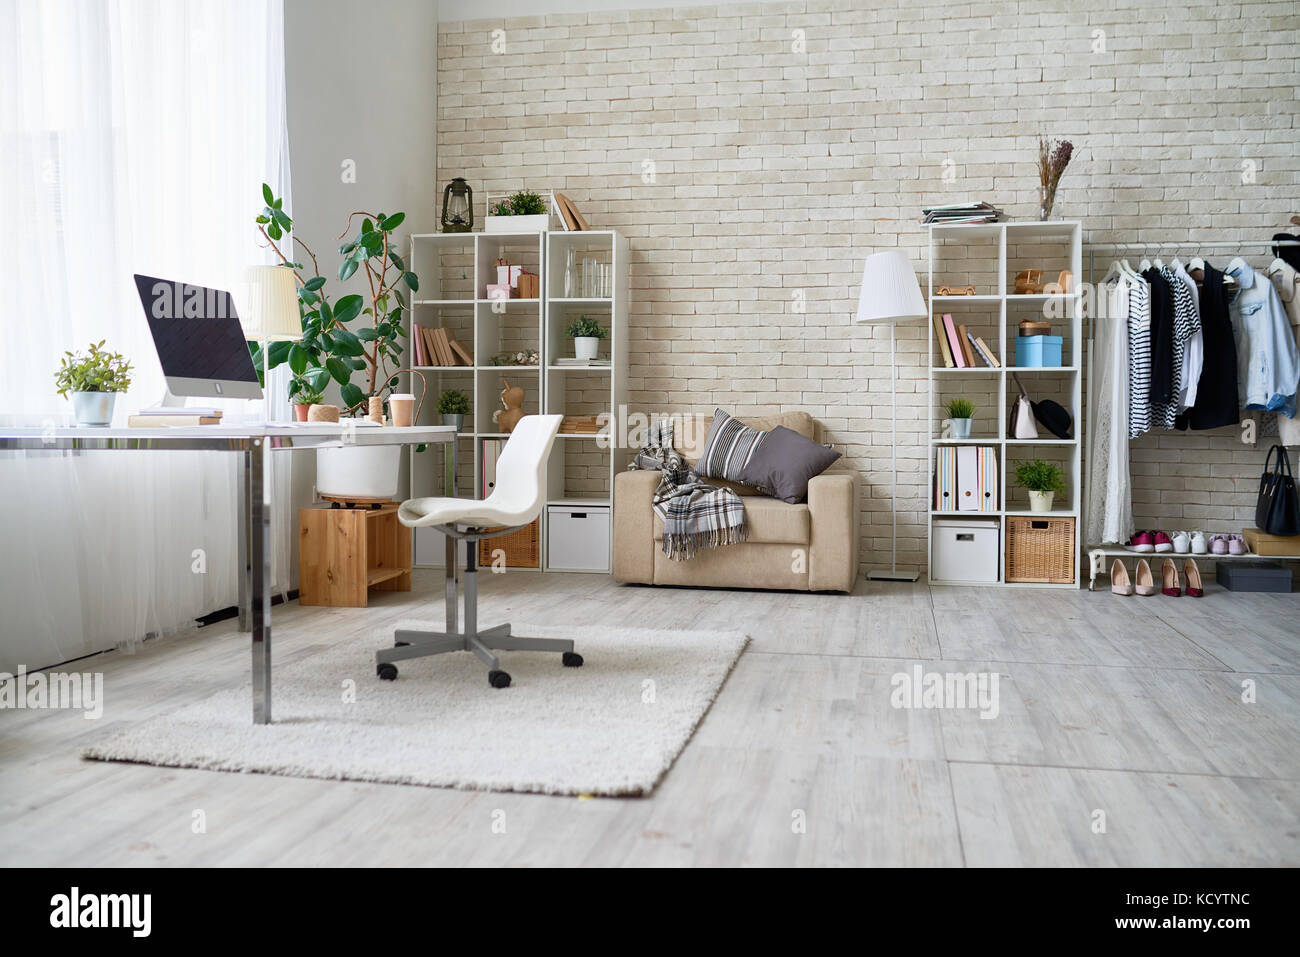 Good Background Image Of Empty Office Space In Cozy Apartment With Modern Design